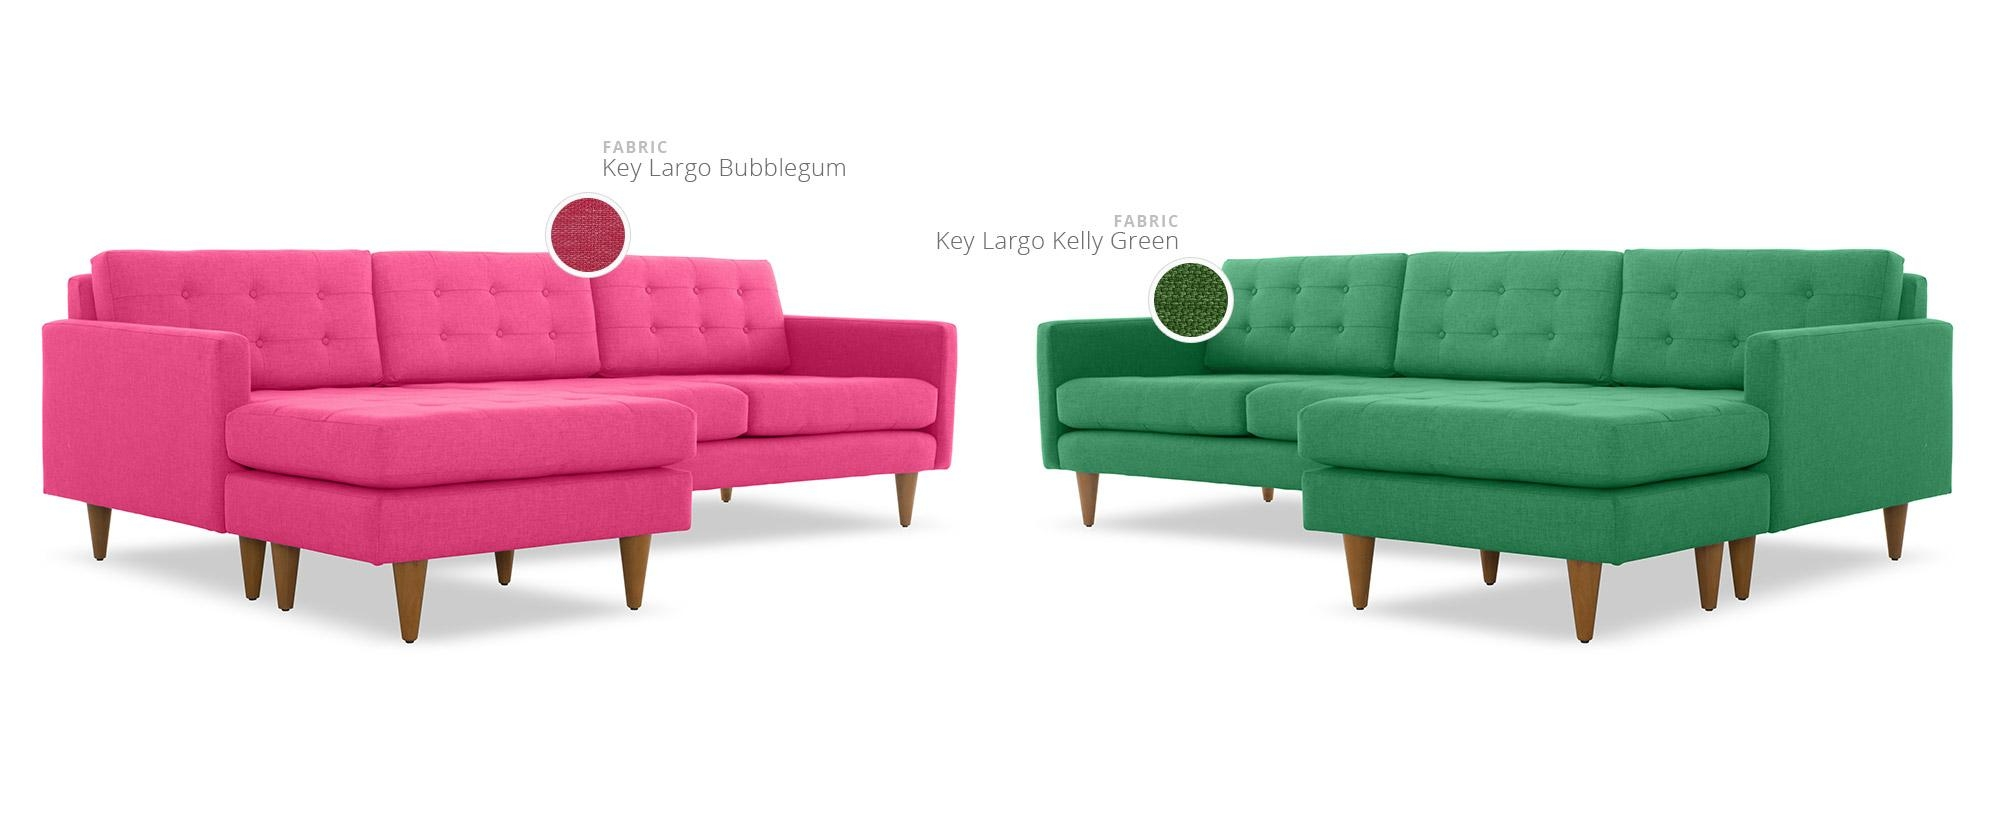 featured photo of mid century modern sectional sofa